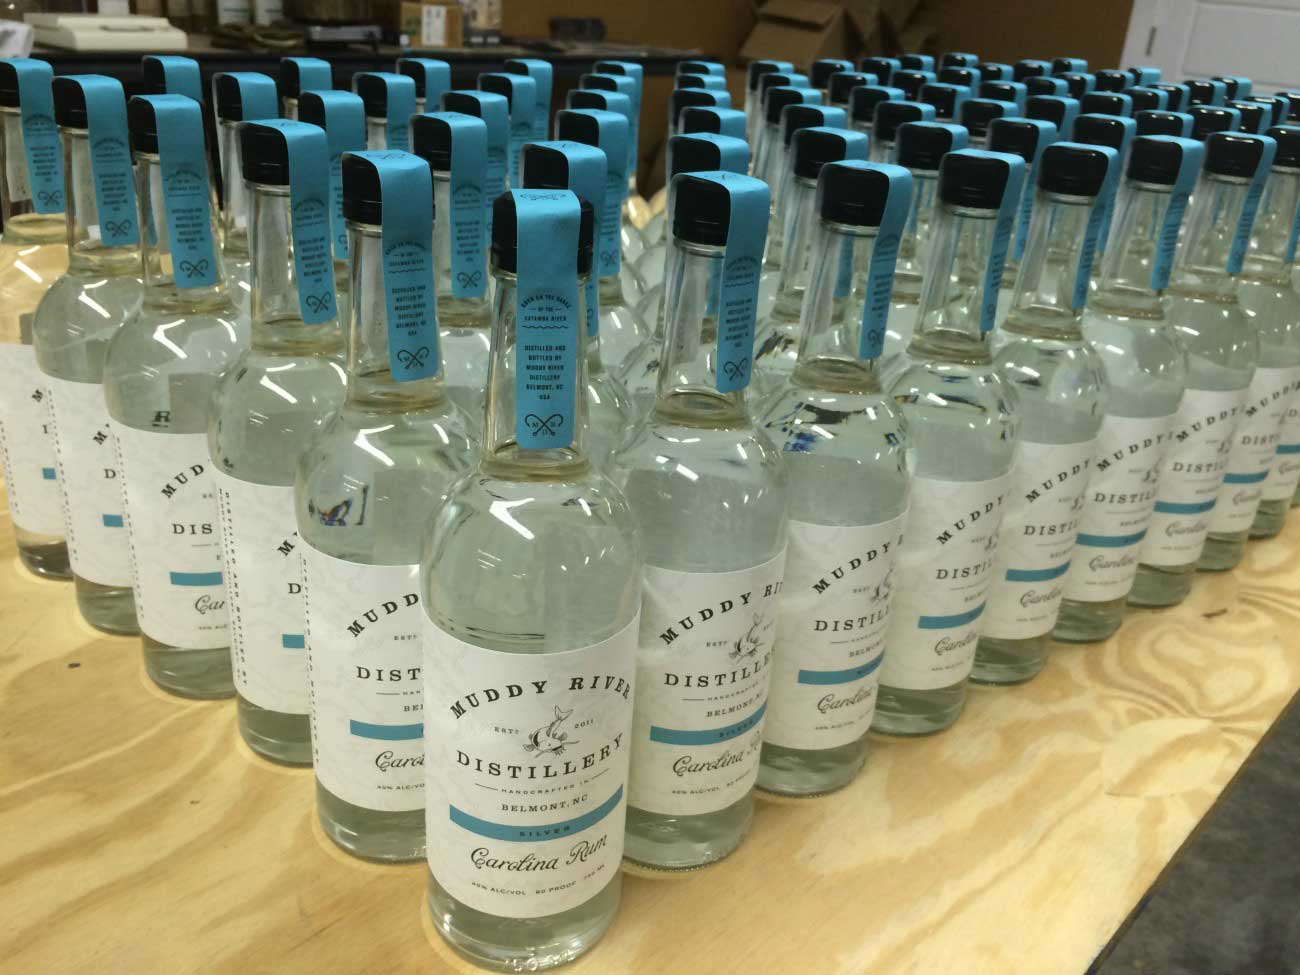 N.C. distilleries can soon sell bottles to customers